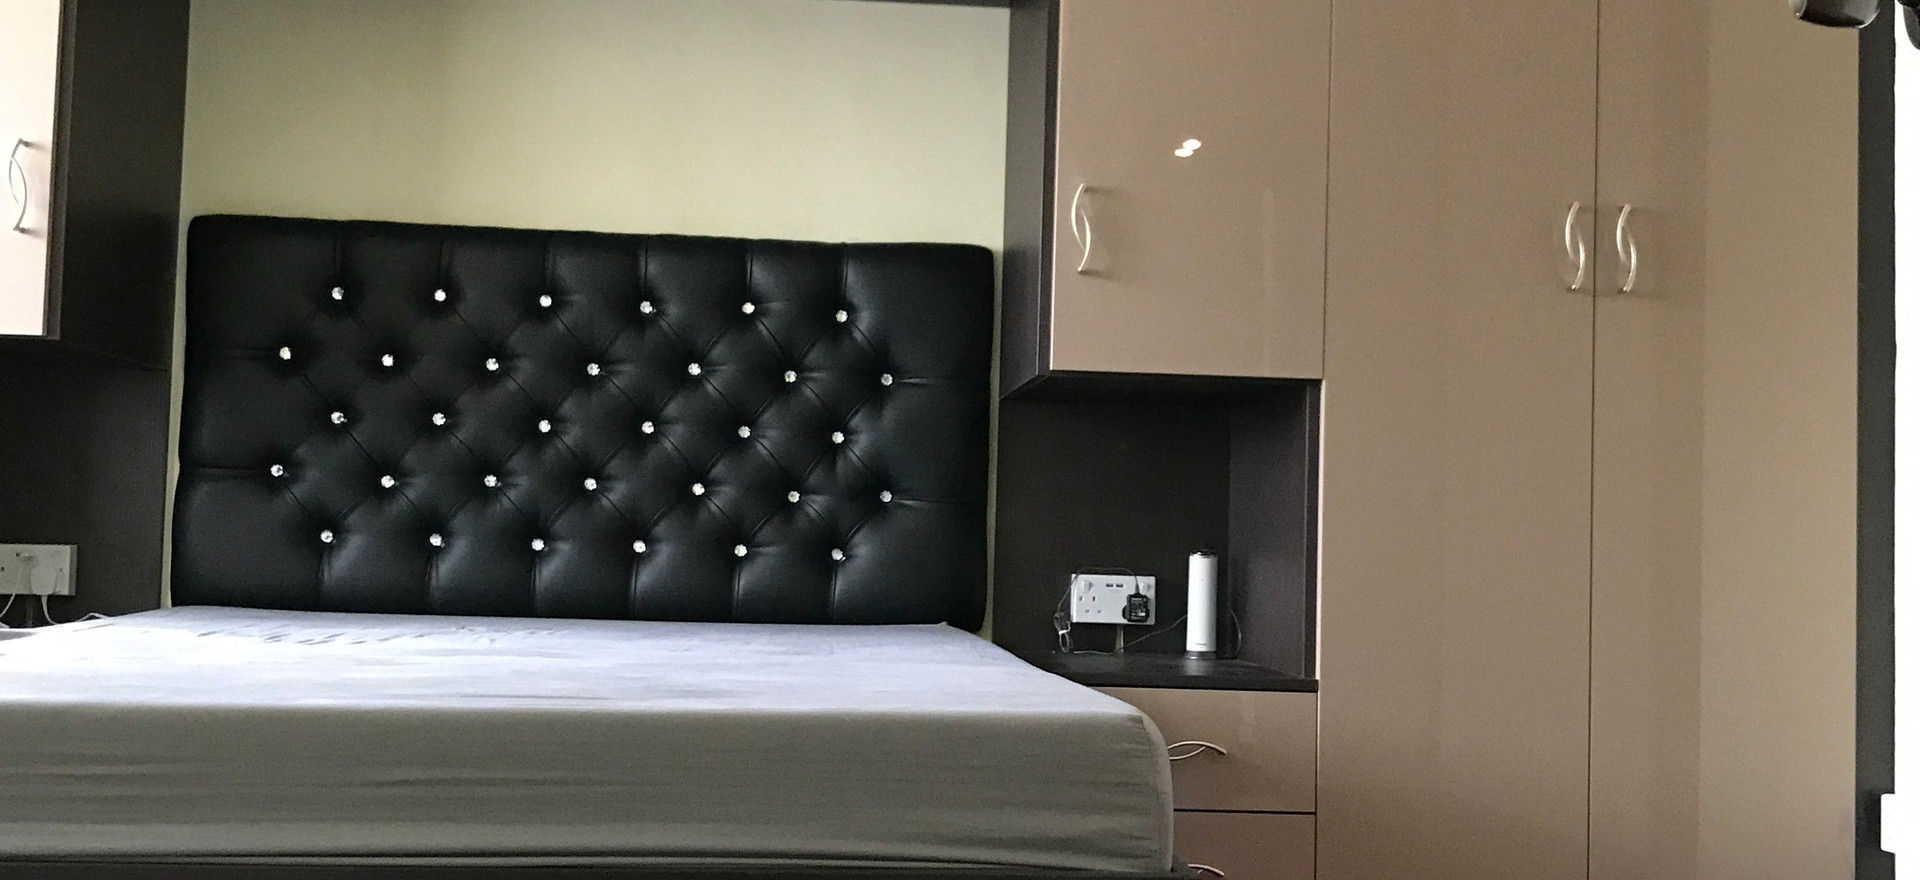 Bed and Lighting